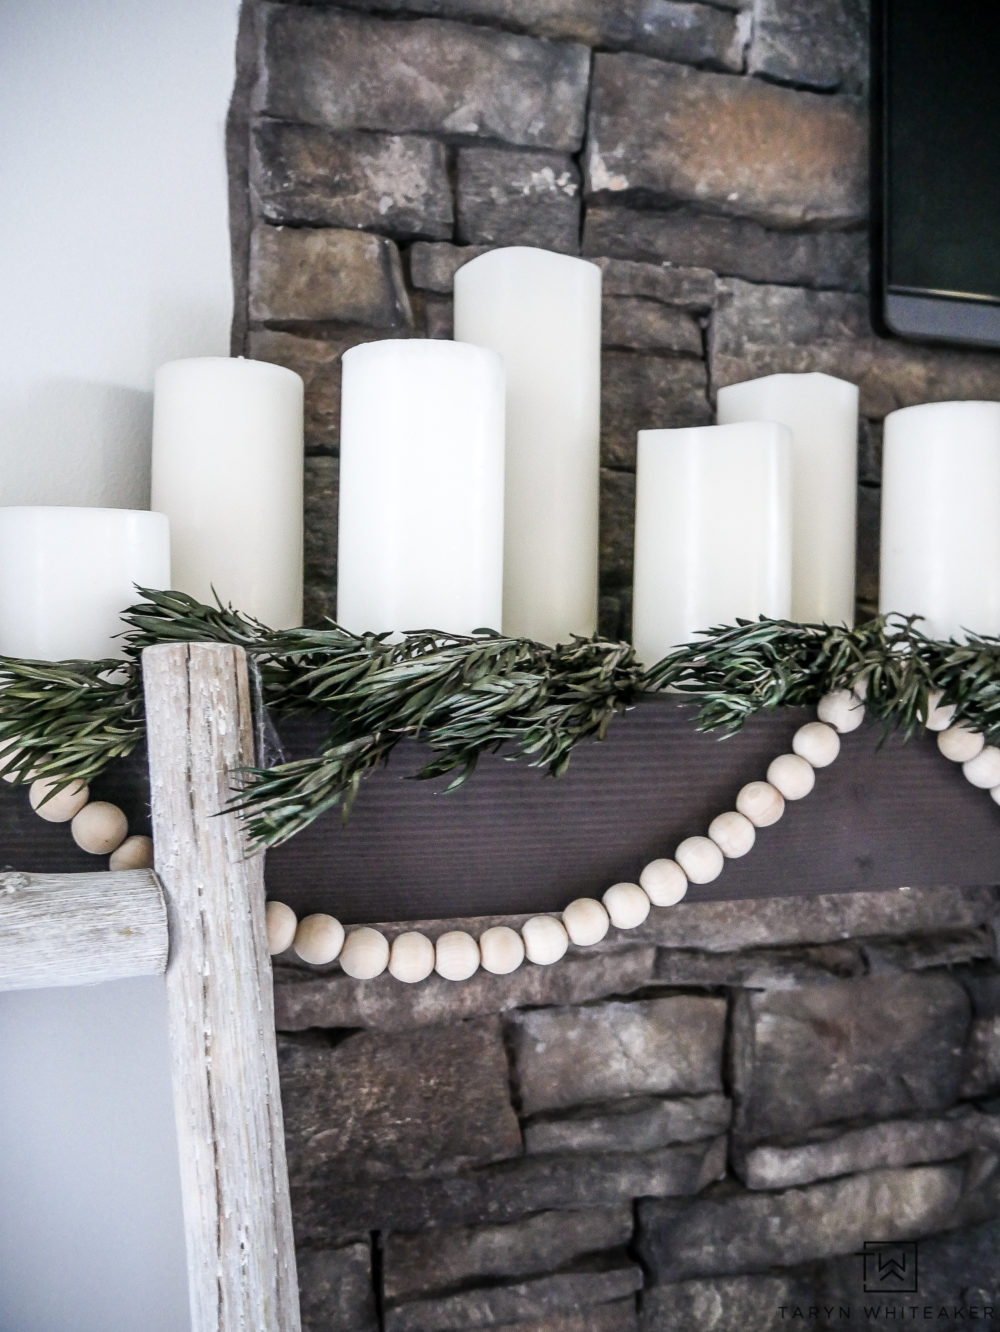 simple white candles on the Christmas mantel.